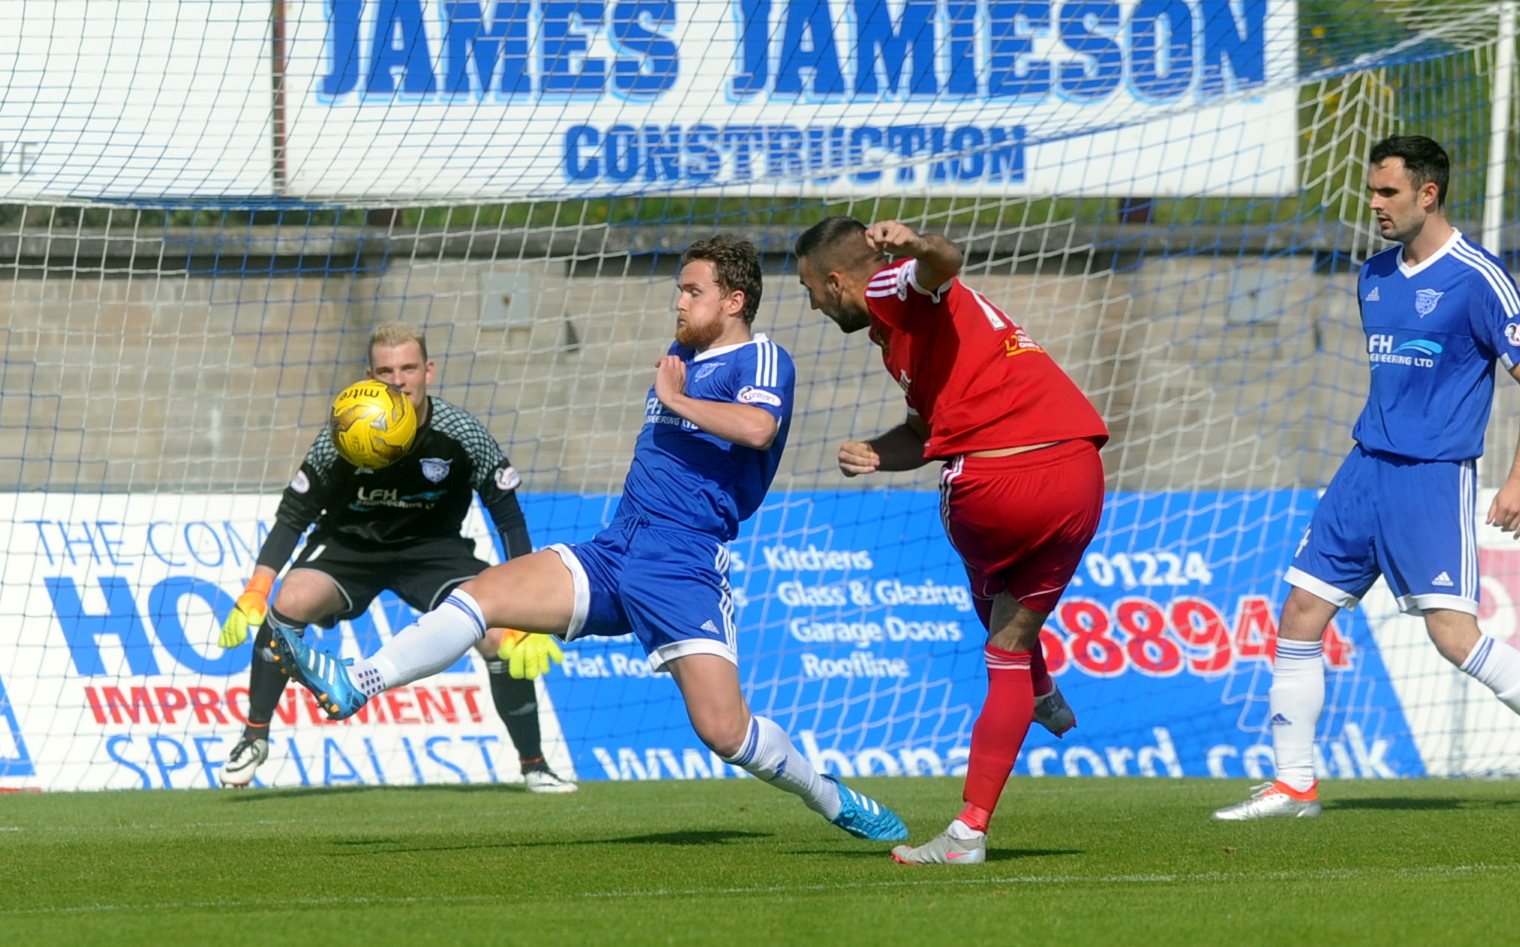 Peterhead's Scott Rumsby deflects a shot by Albion's Scott McBride.  picture by chris sumner